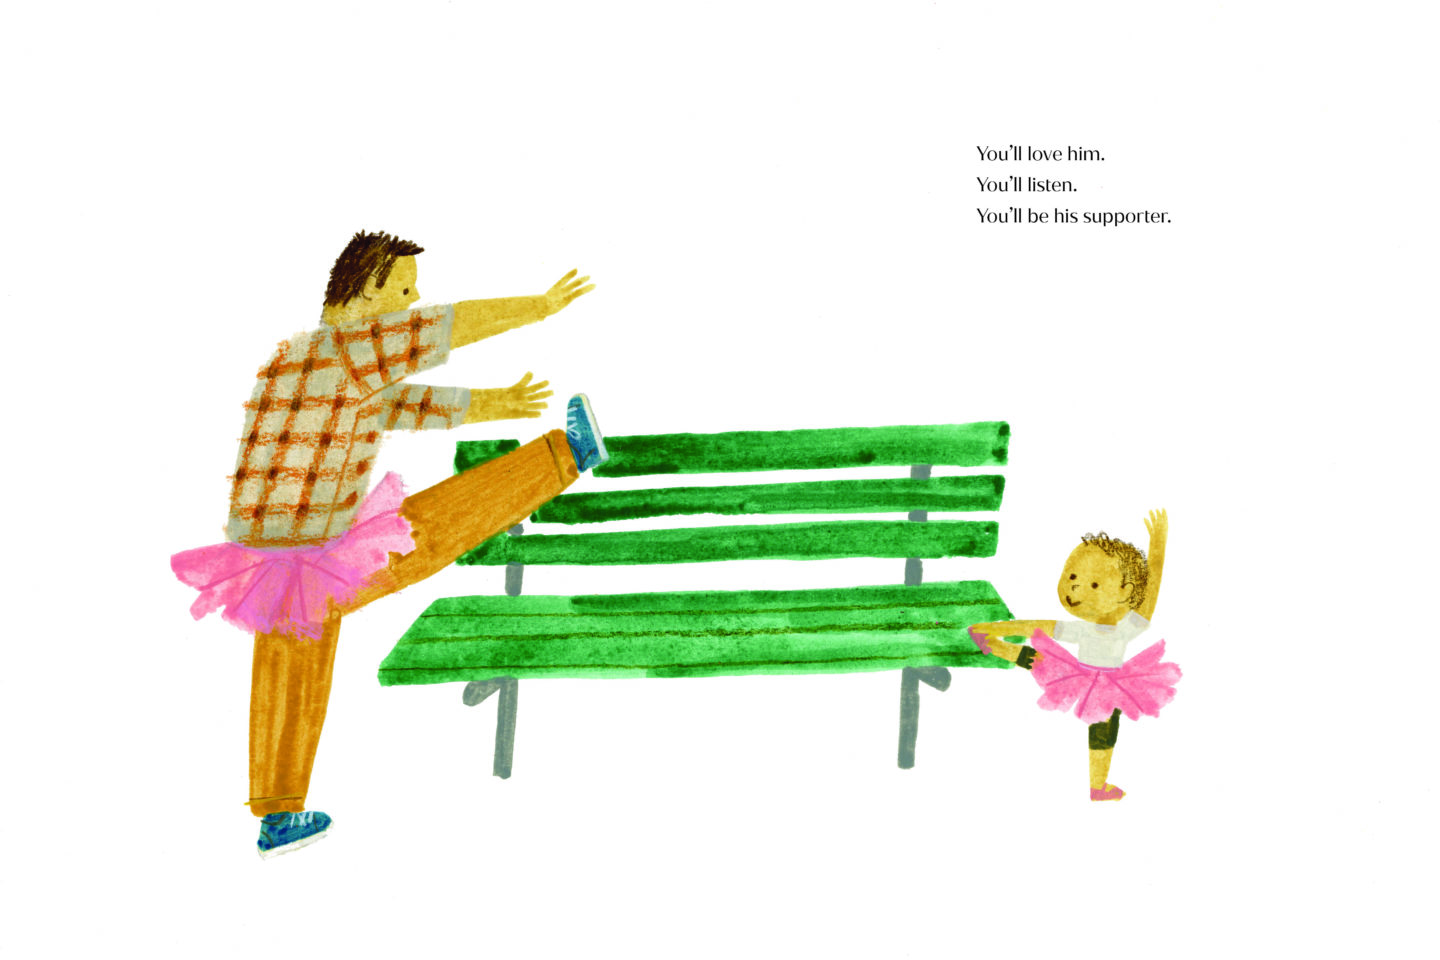 A dad and his son wear tutus and dance around a green bench. The text reads: you'll love him. You'll listen. You'll be his supporter.